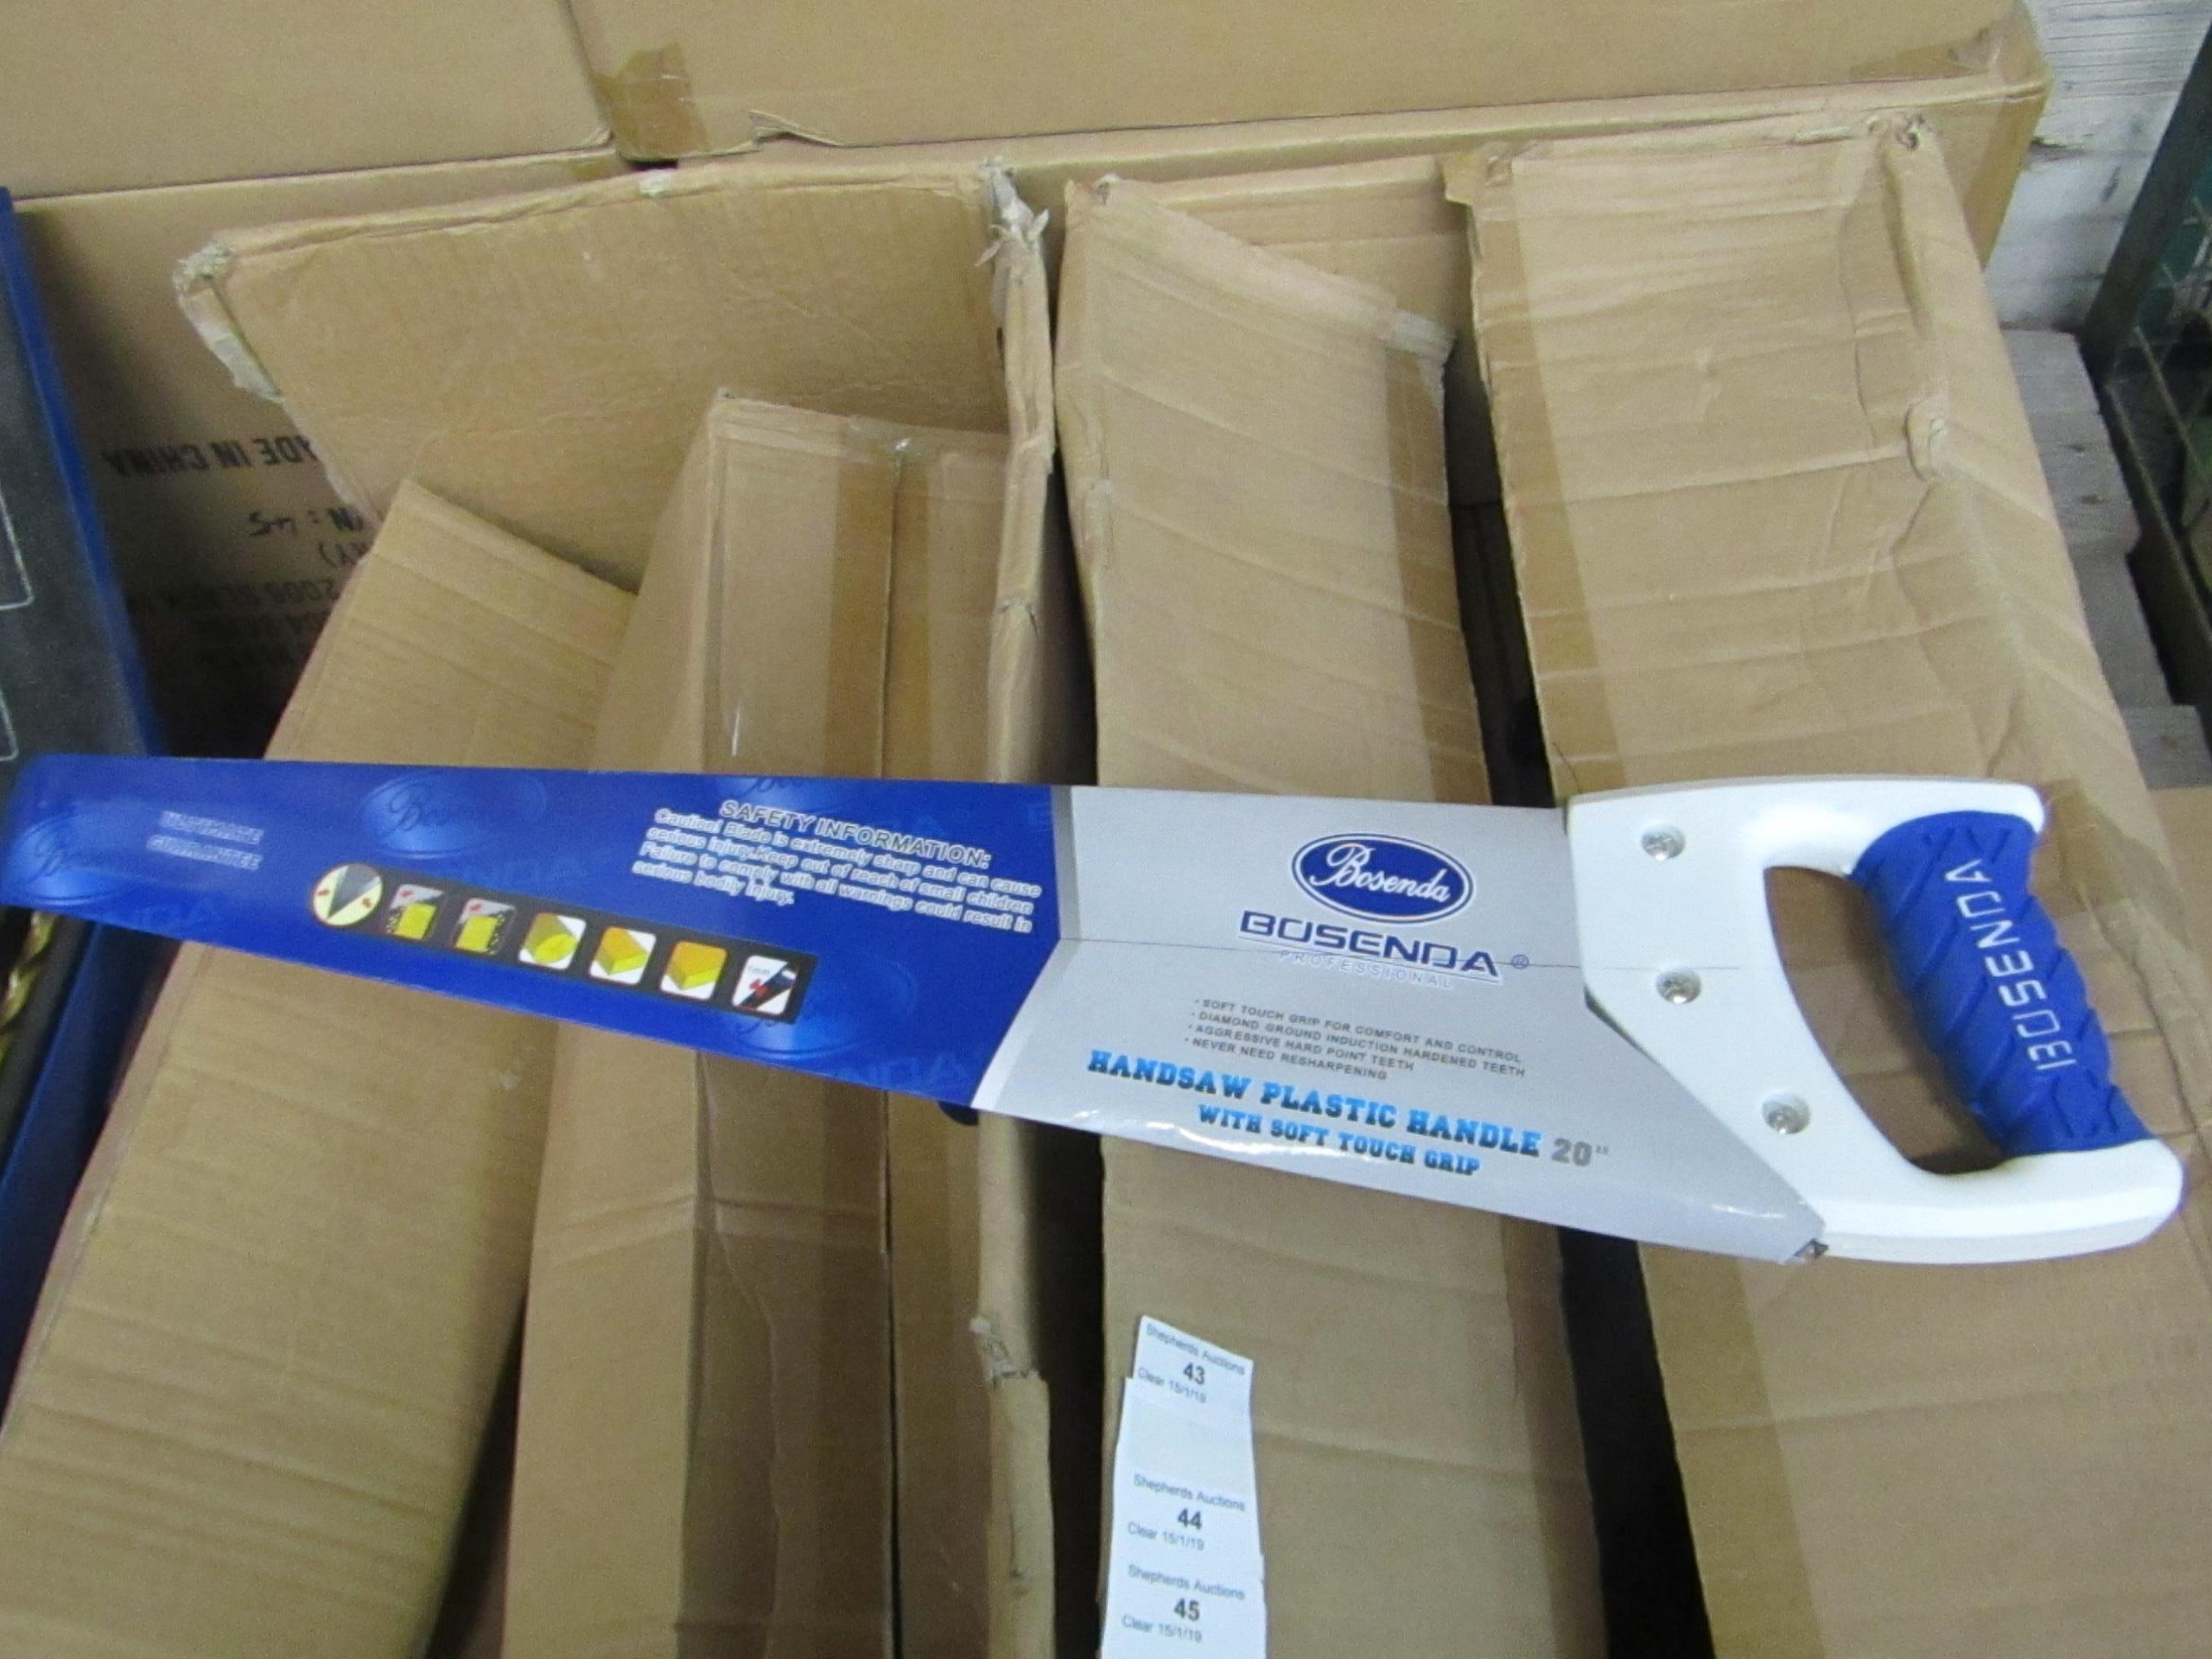 """Lot 49 - Bosenda Professional 20"""" Hand saw with Soft touch grip handle, new."""